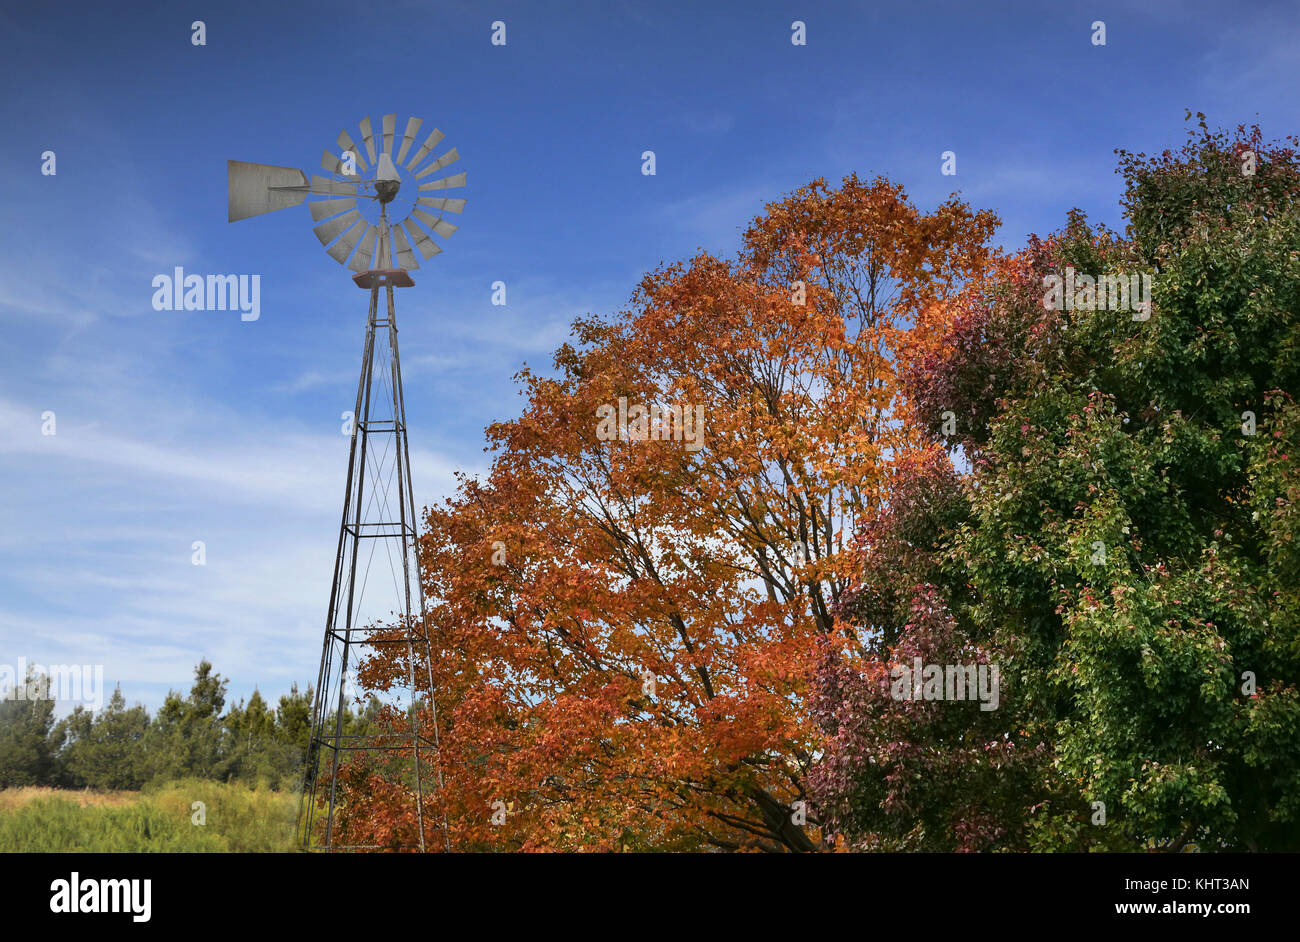 Typical NorthAmerican Countryside Landscape With Redish-Yellow Trees And Old Windmill - Stock Image